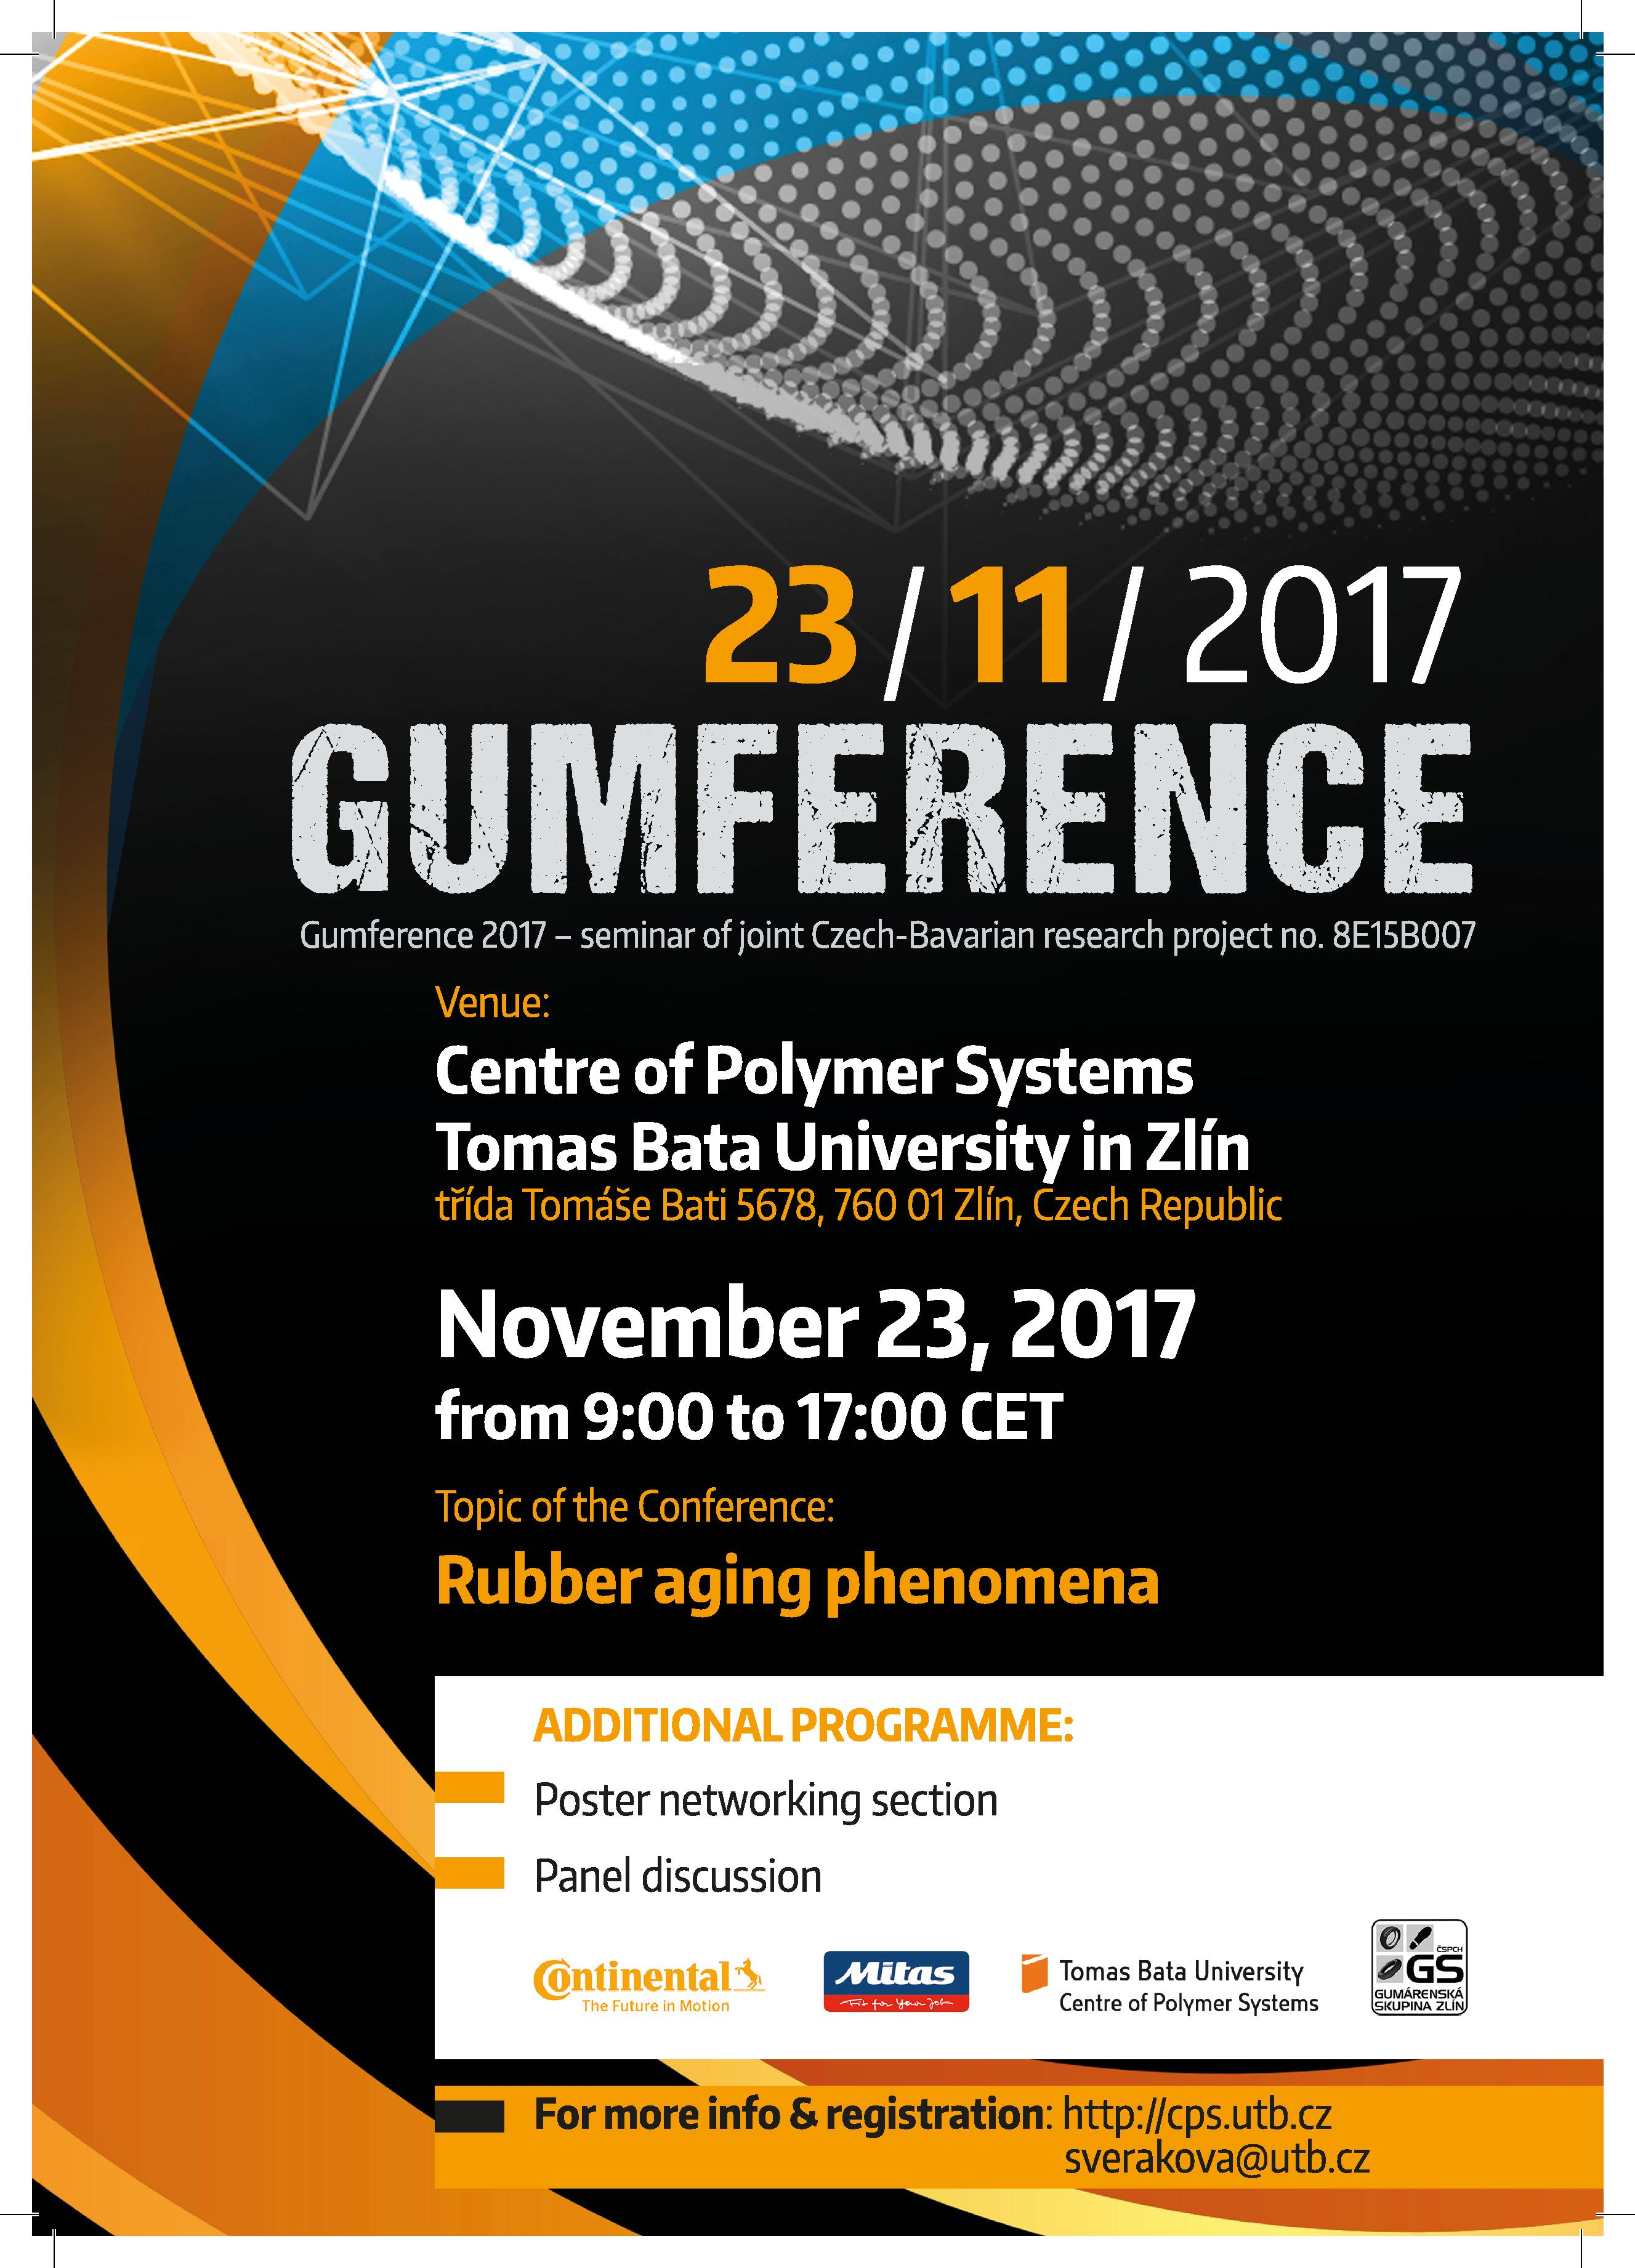 GUMFERENCE2017.jpg